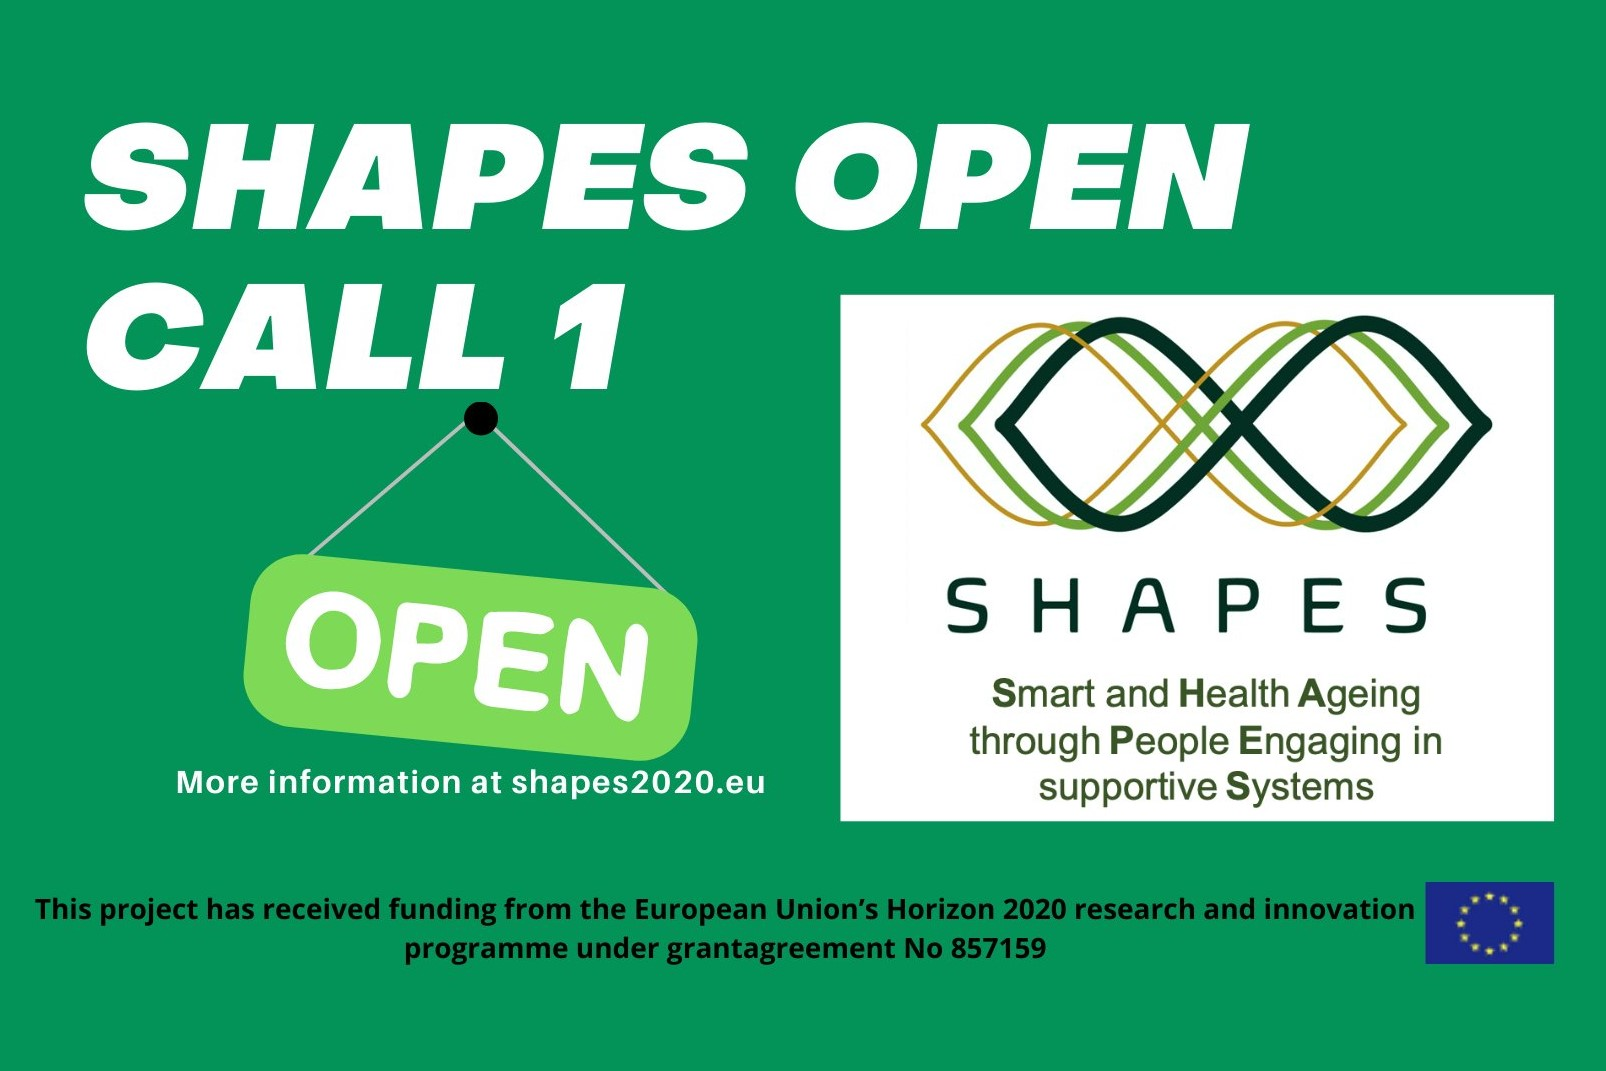 SHAPES project has launched its 1st Open Call!